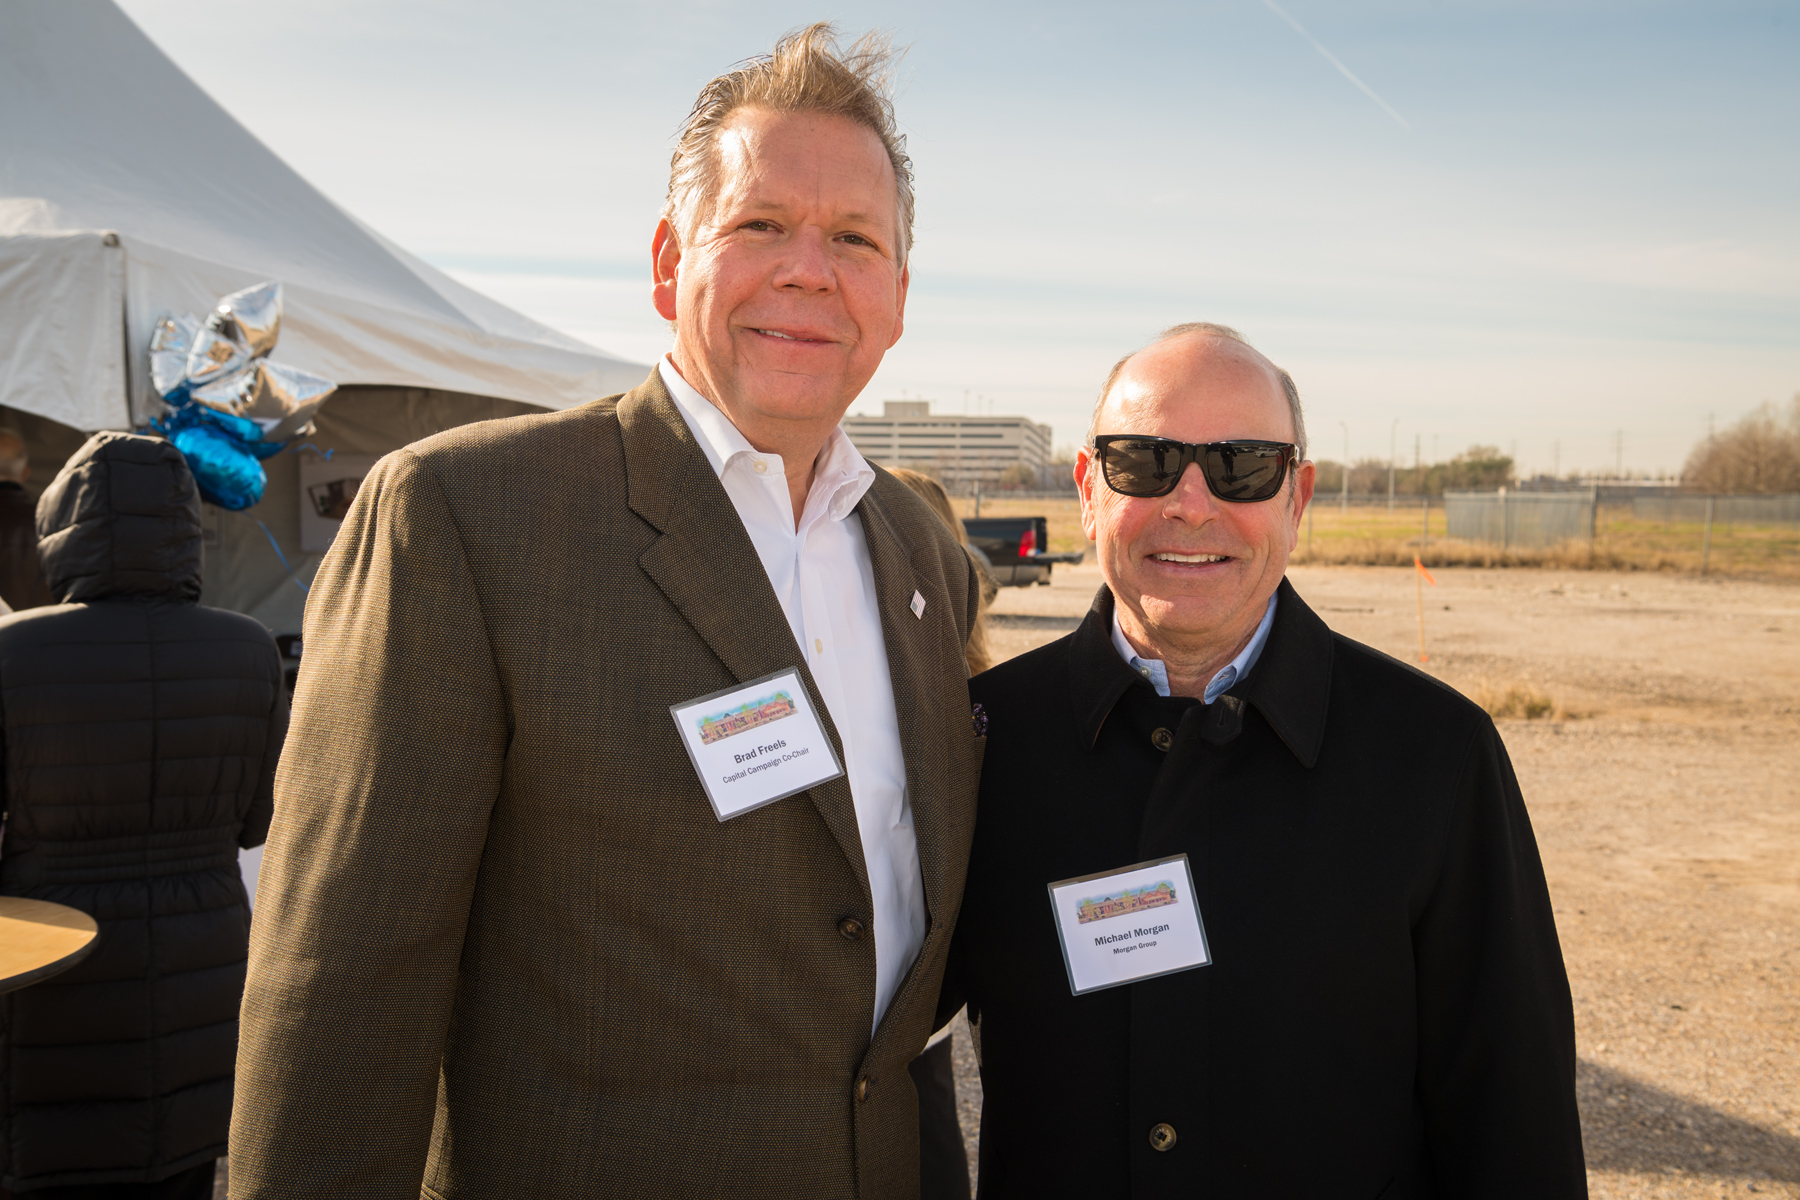 "<div class=""meta image-caption""><div class=""origin-logo origin-image ktrk""><span>KTRK</span></div><span class=""caption-text"">Bradley Freels of Midway & Michael Morgan of The Morgan Group</span></div>"